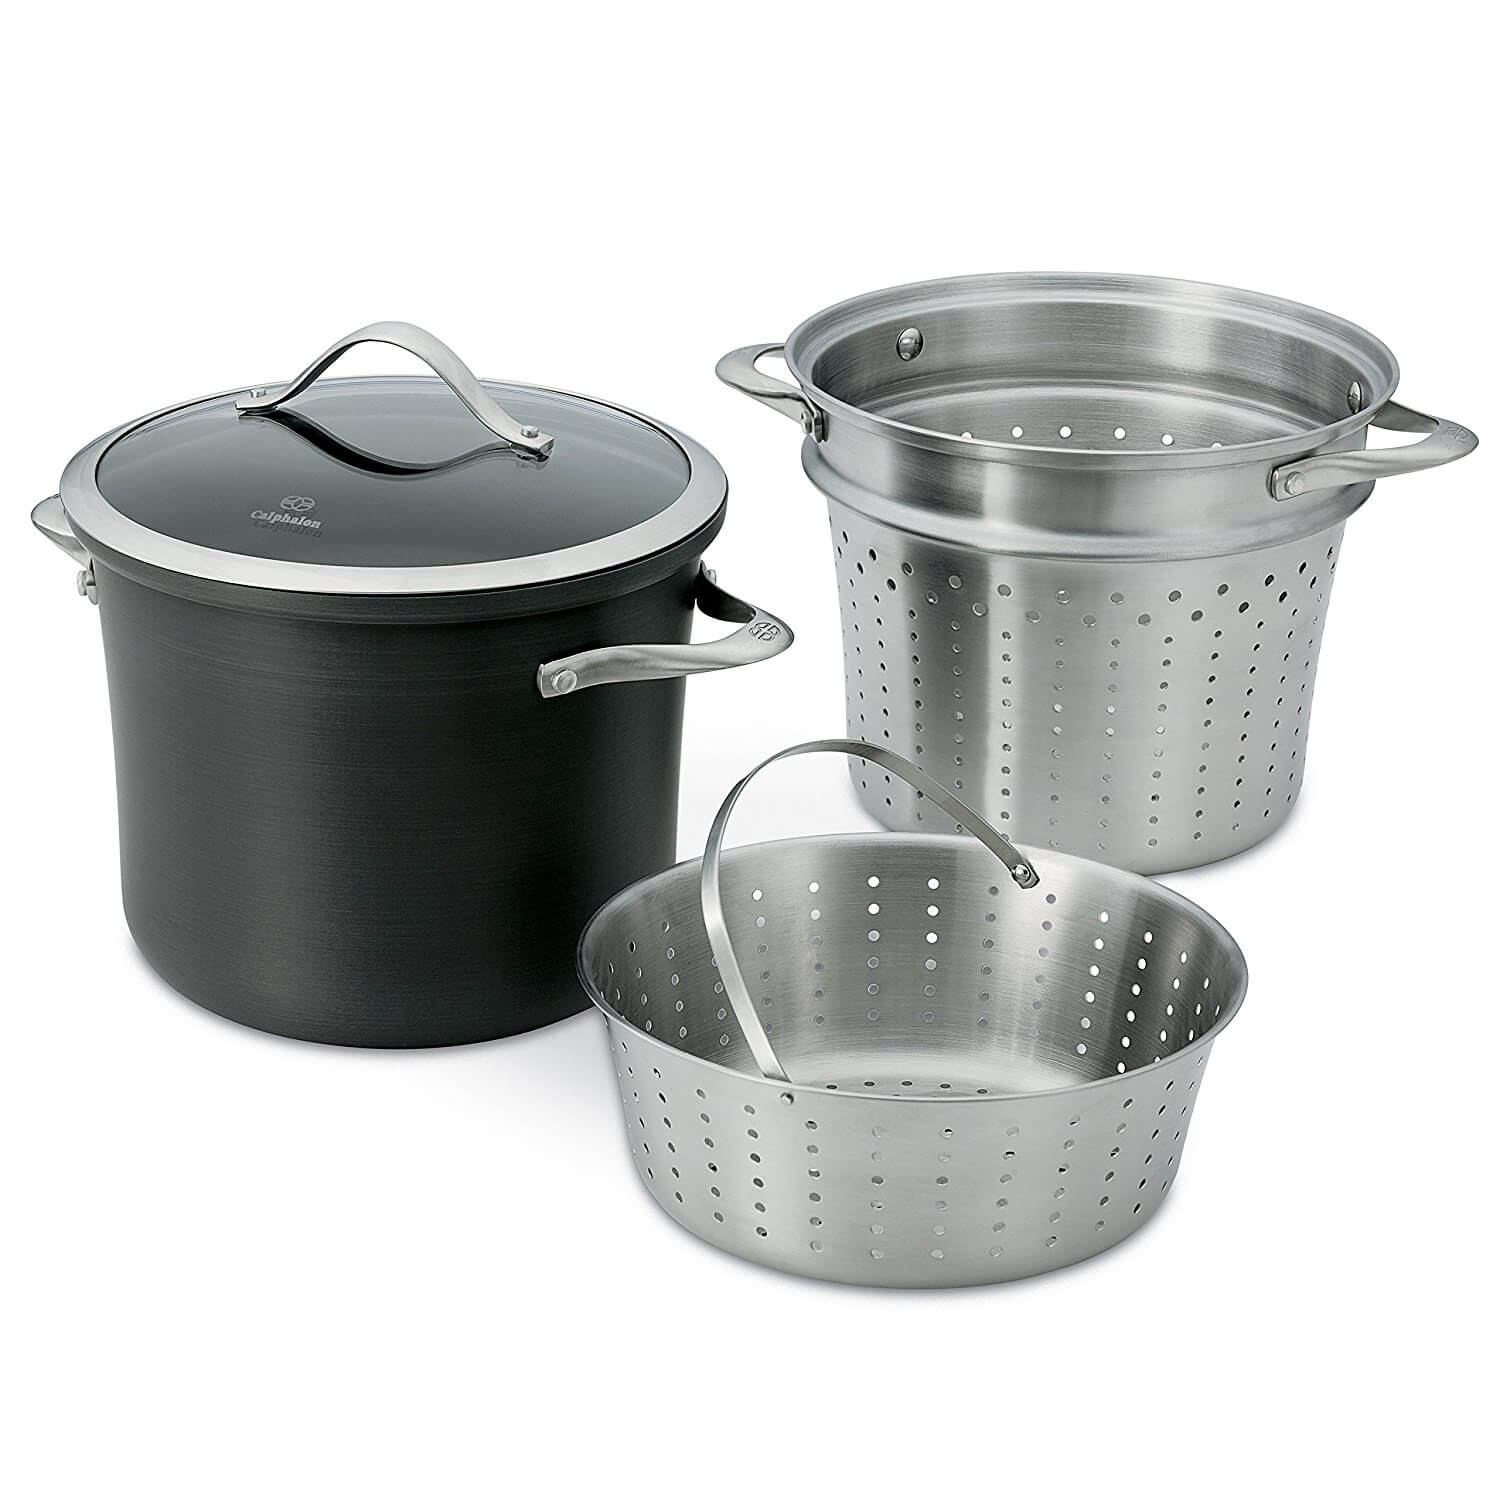 Calphalon Contemporary Hard-Anodized Pasta Pot